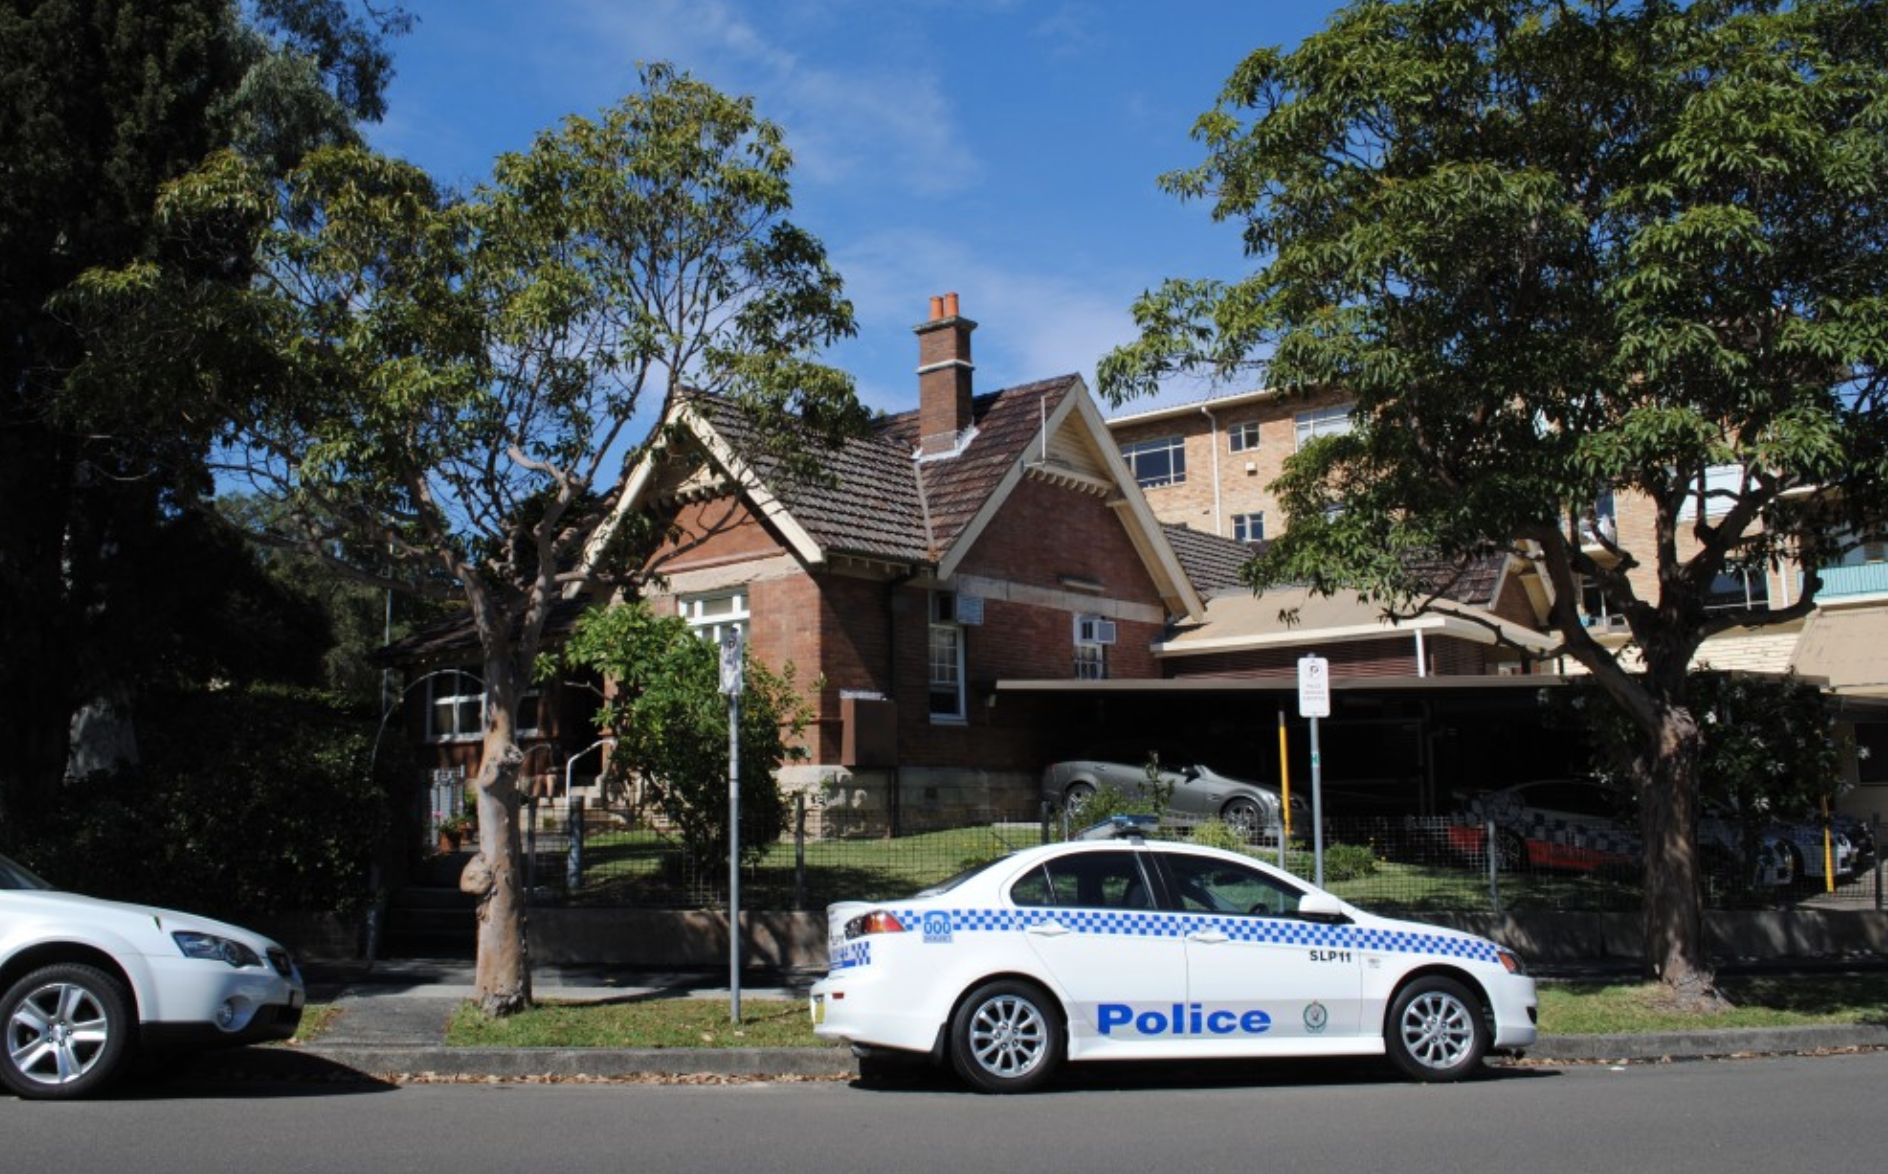 Local police feared the worst when called to Prince St, Mosman last Wednesday.